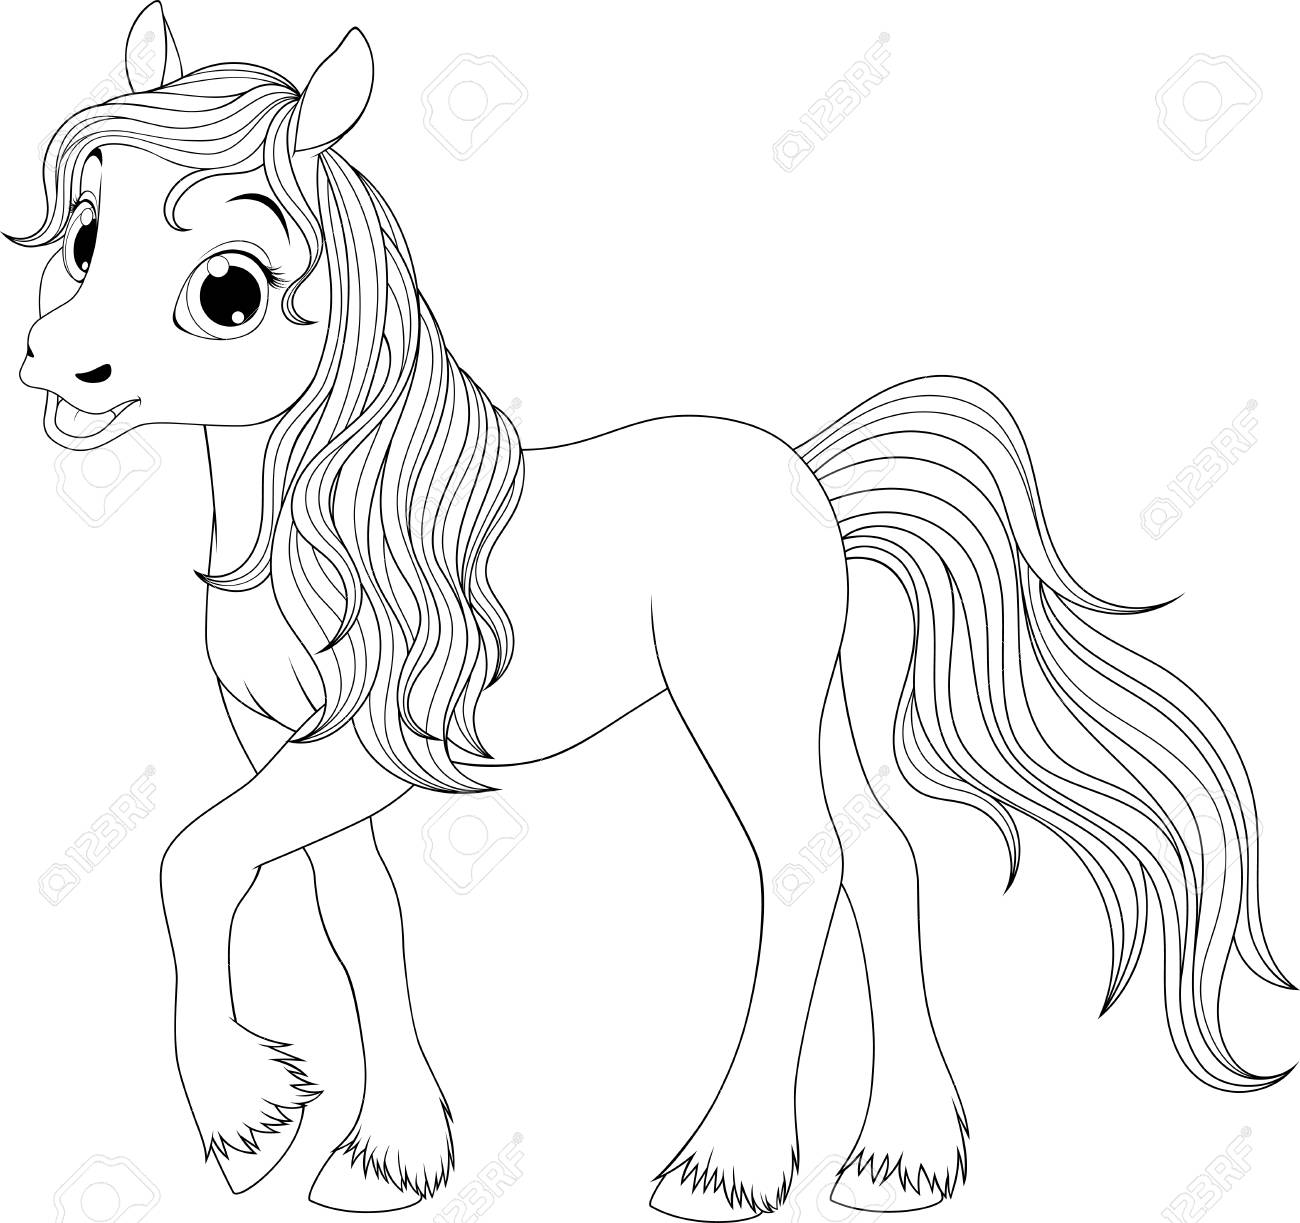 Vector Illustration Funny Baby Foal On A White Background Royalty Free Cliparts Vectors And Stock Illustration Image 99559711